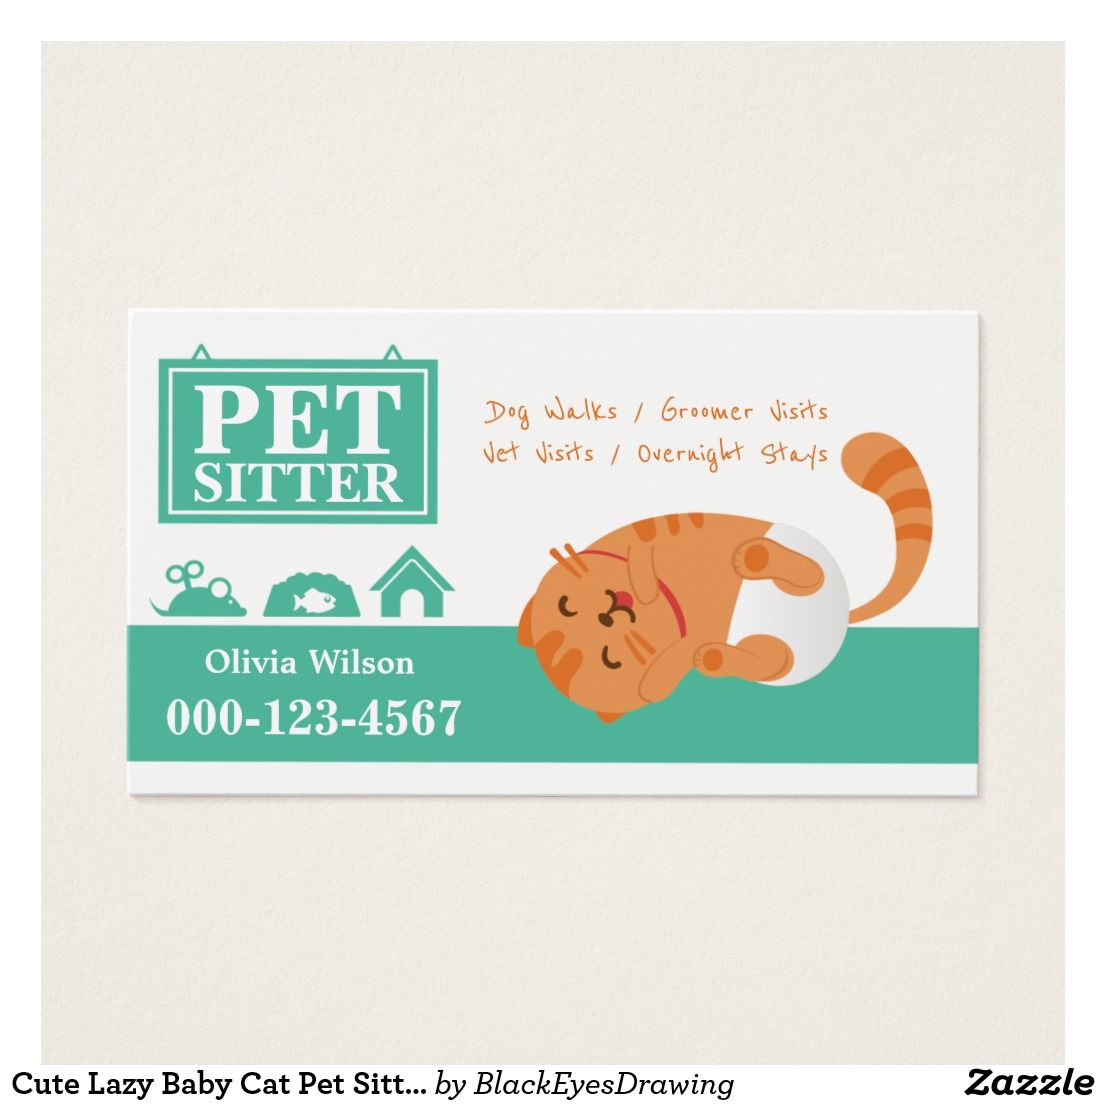 Cute Lazy Baby Cat Pet Sitting Service Business Card | Pet sitting ...